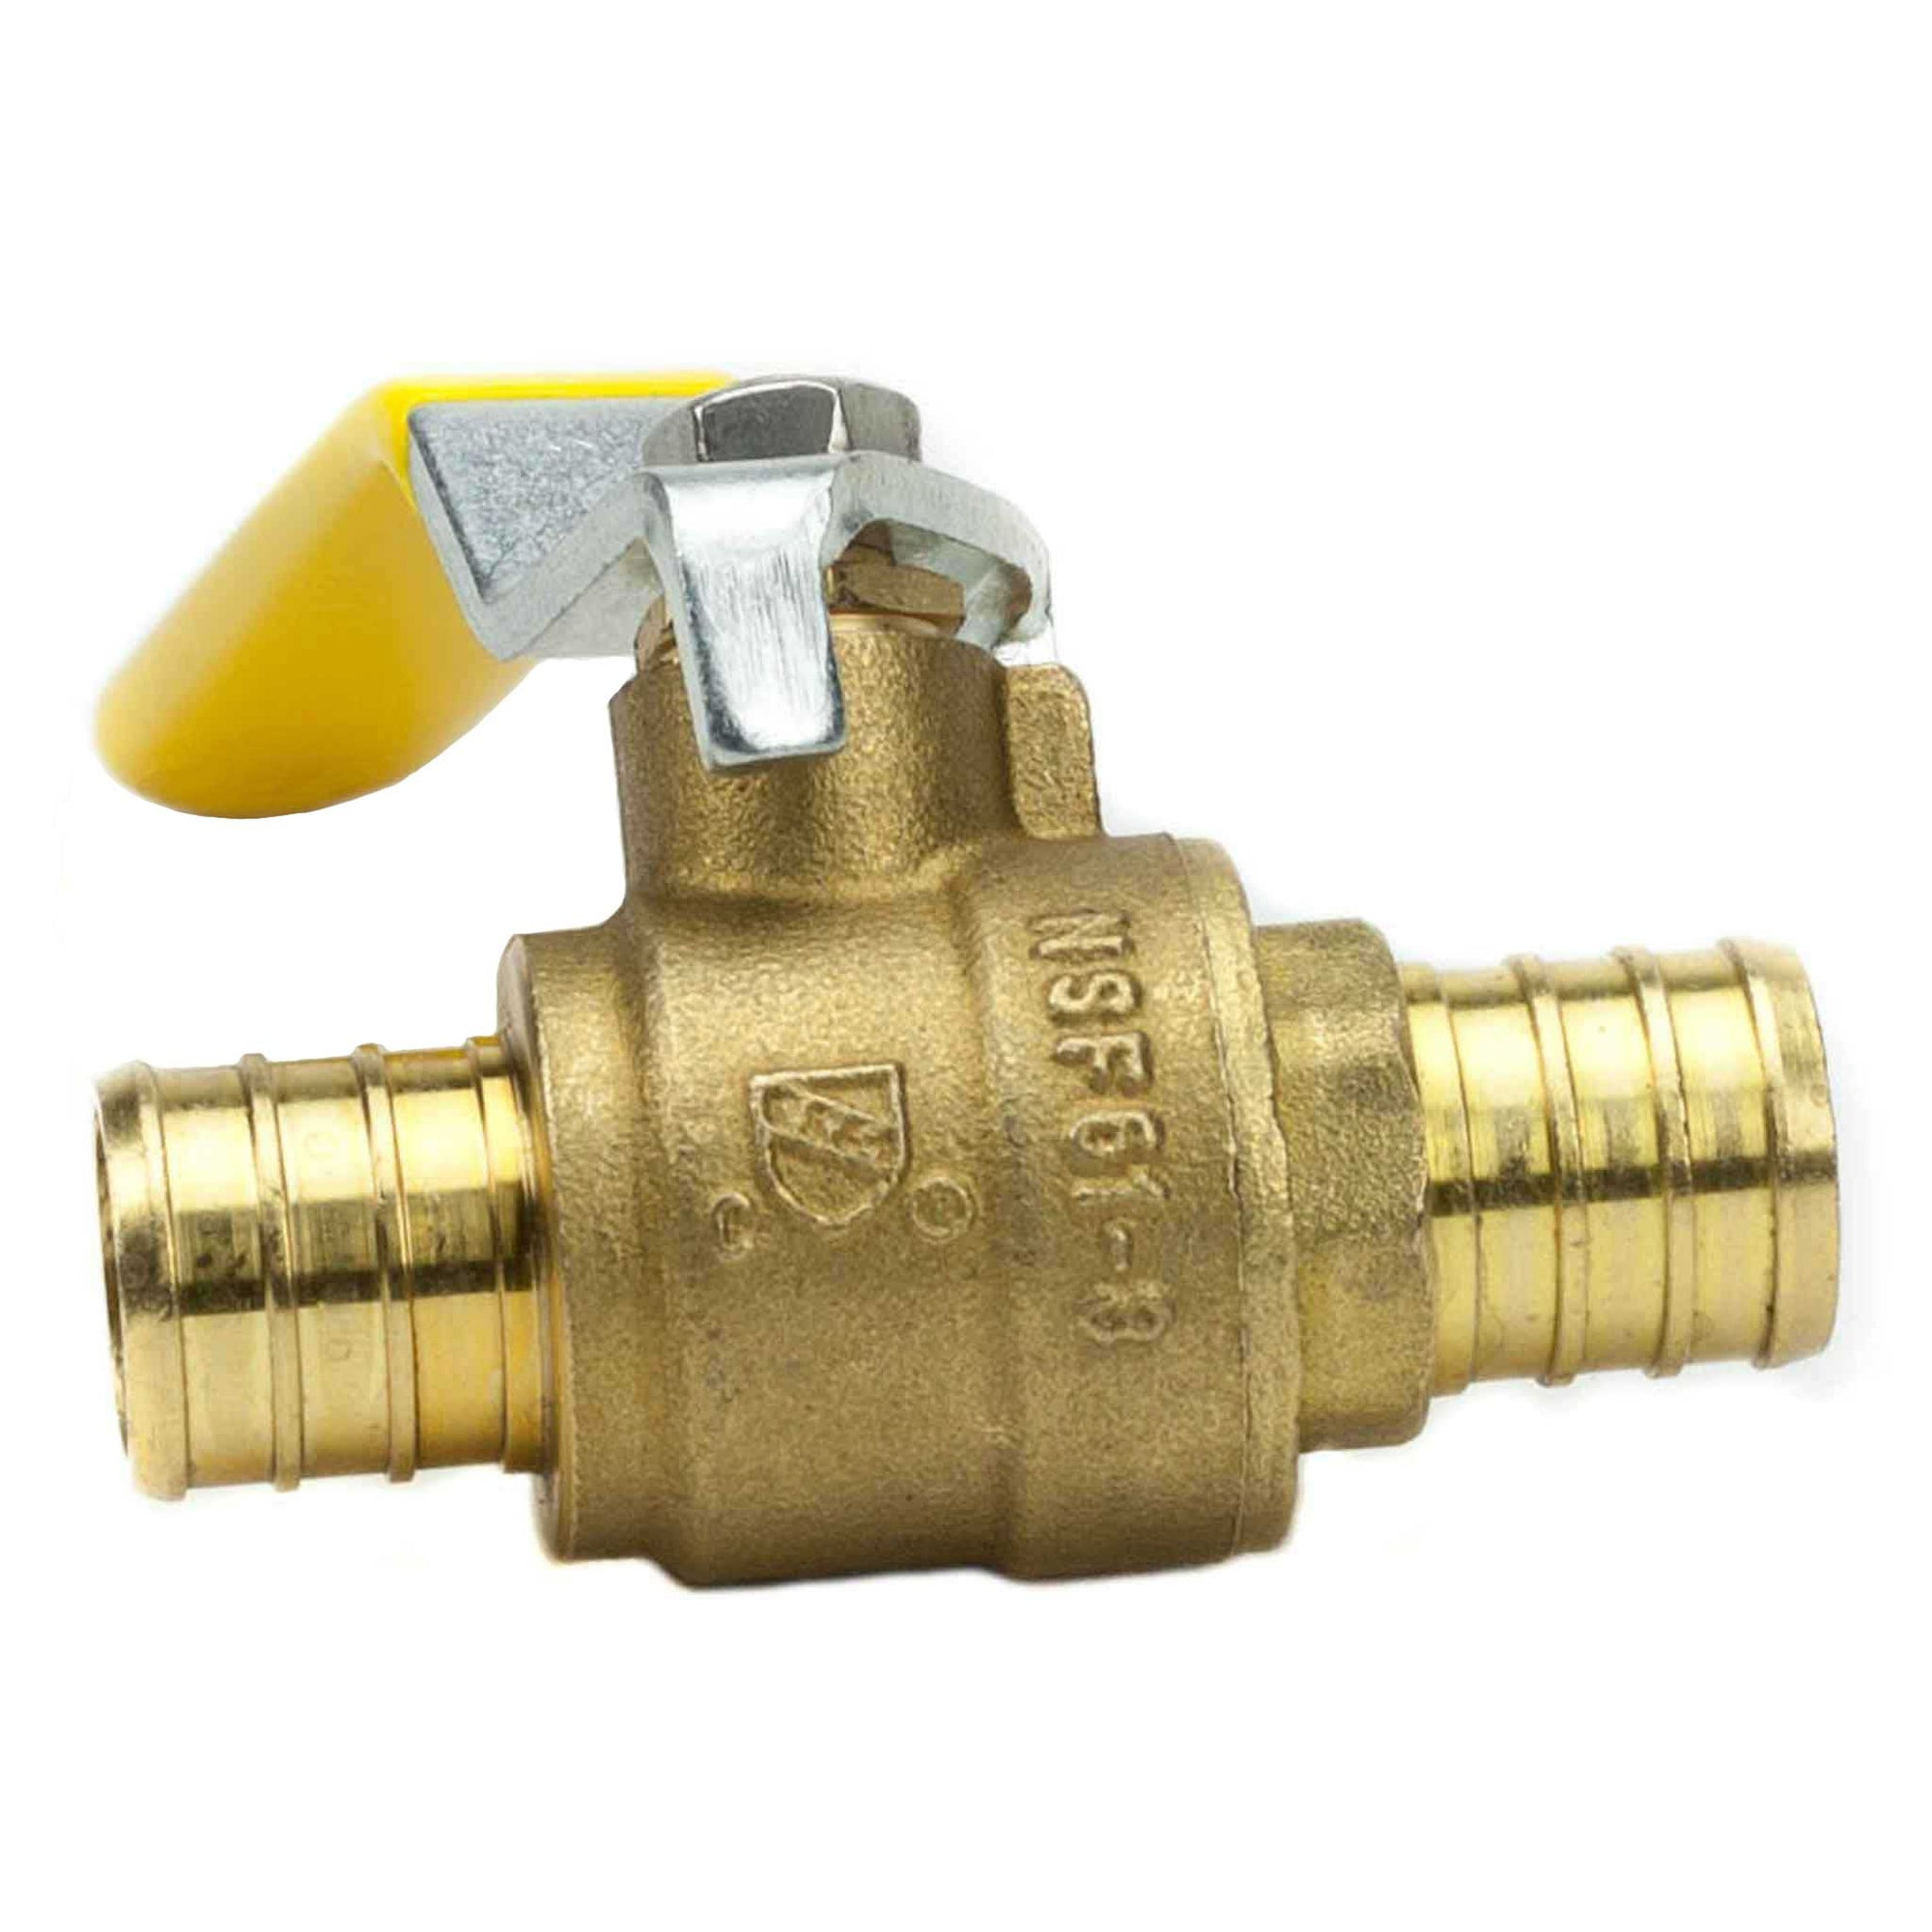 Full Port Pex Ball Valve (Lead Free)